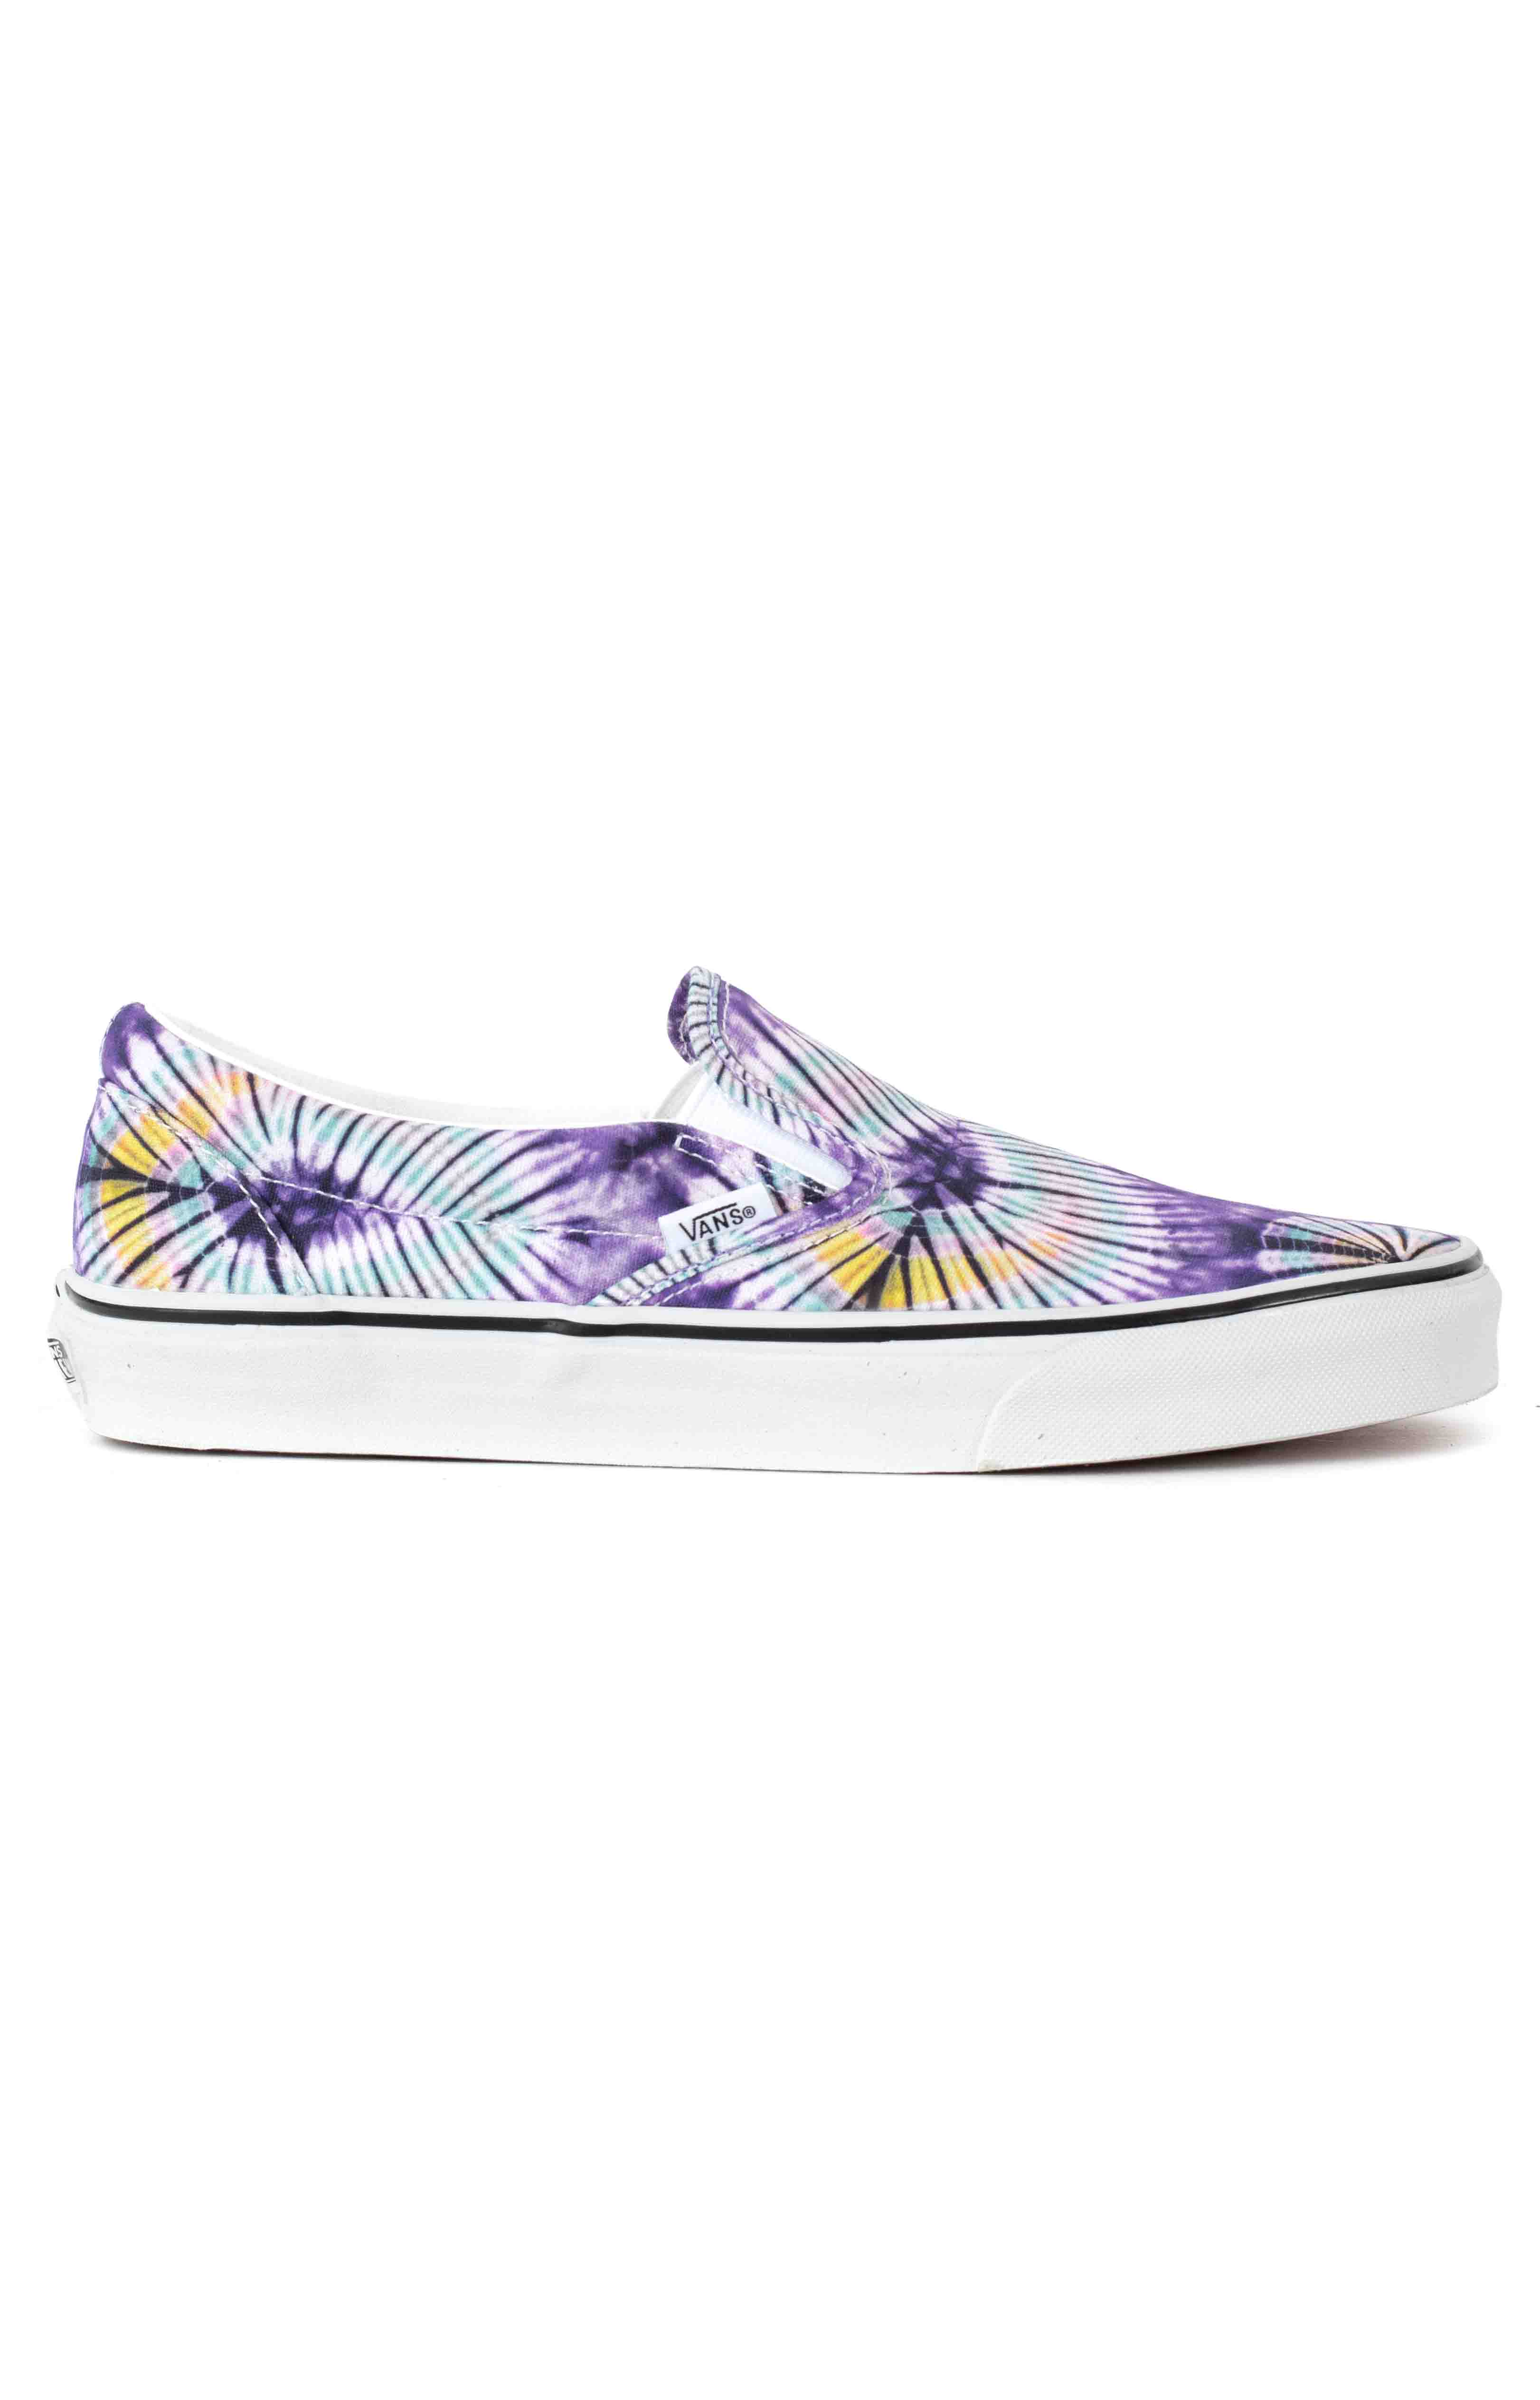 (AO86G6) New Age Classic Slip-On Shoes - Purple Tie-Dye